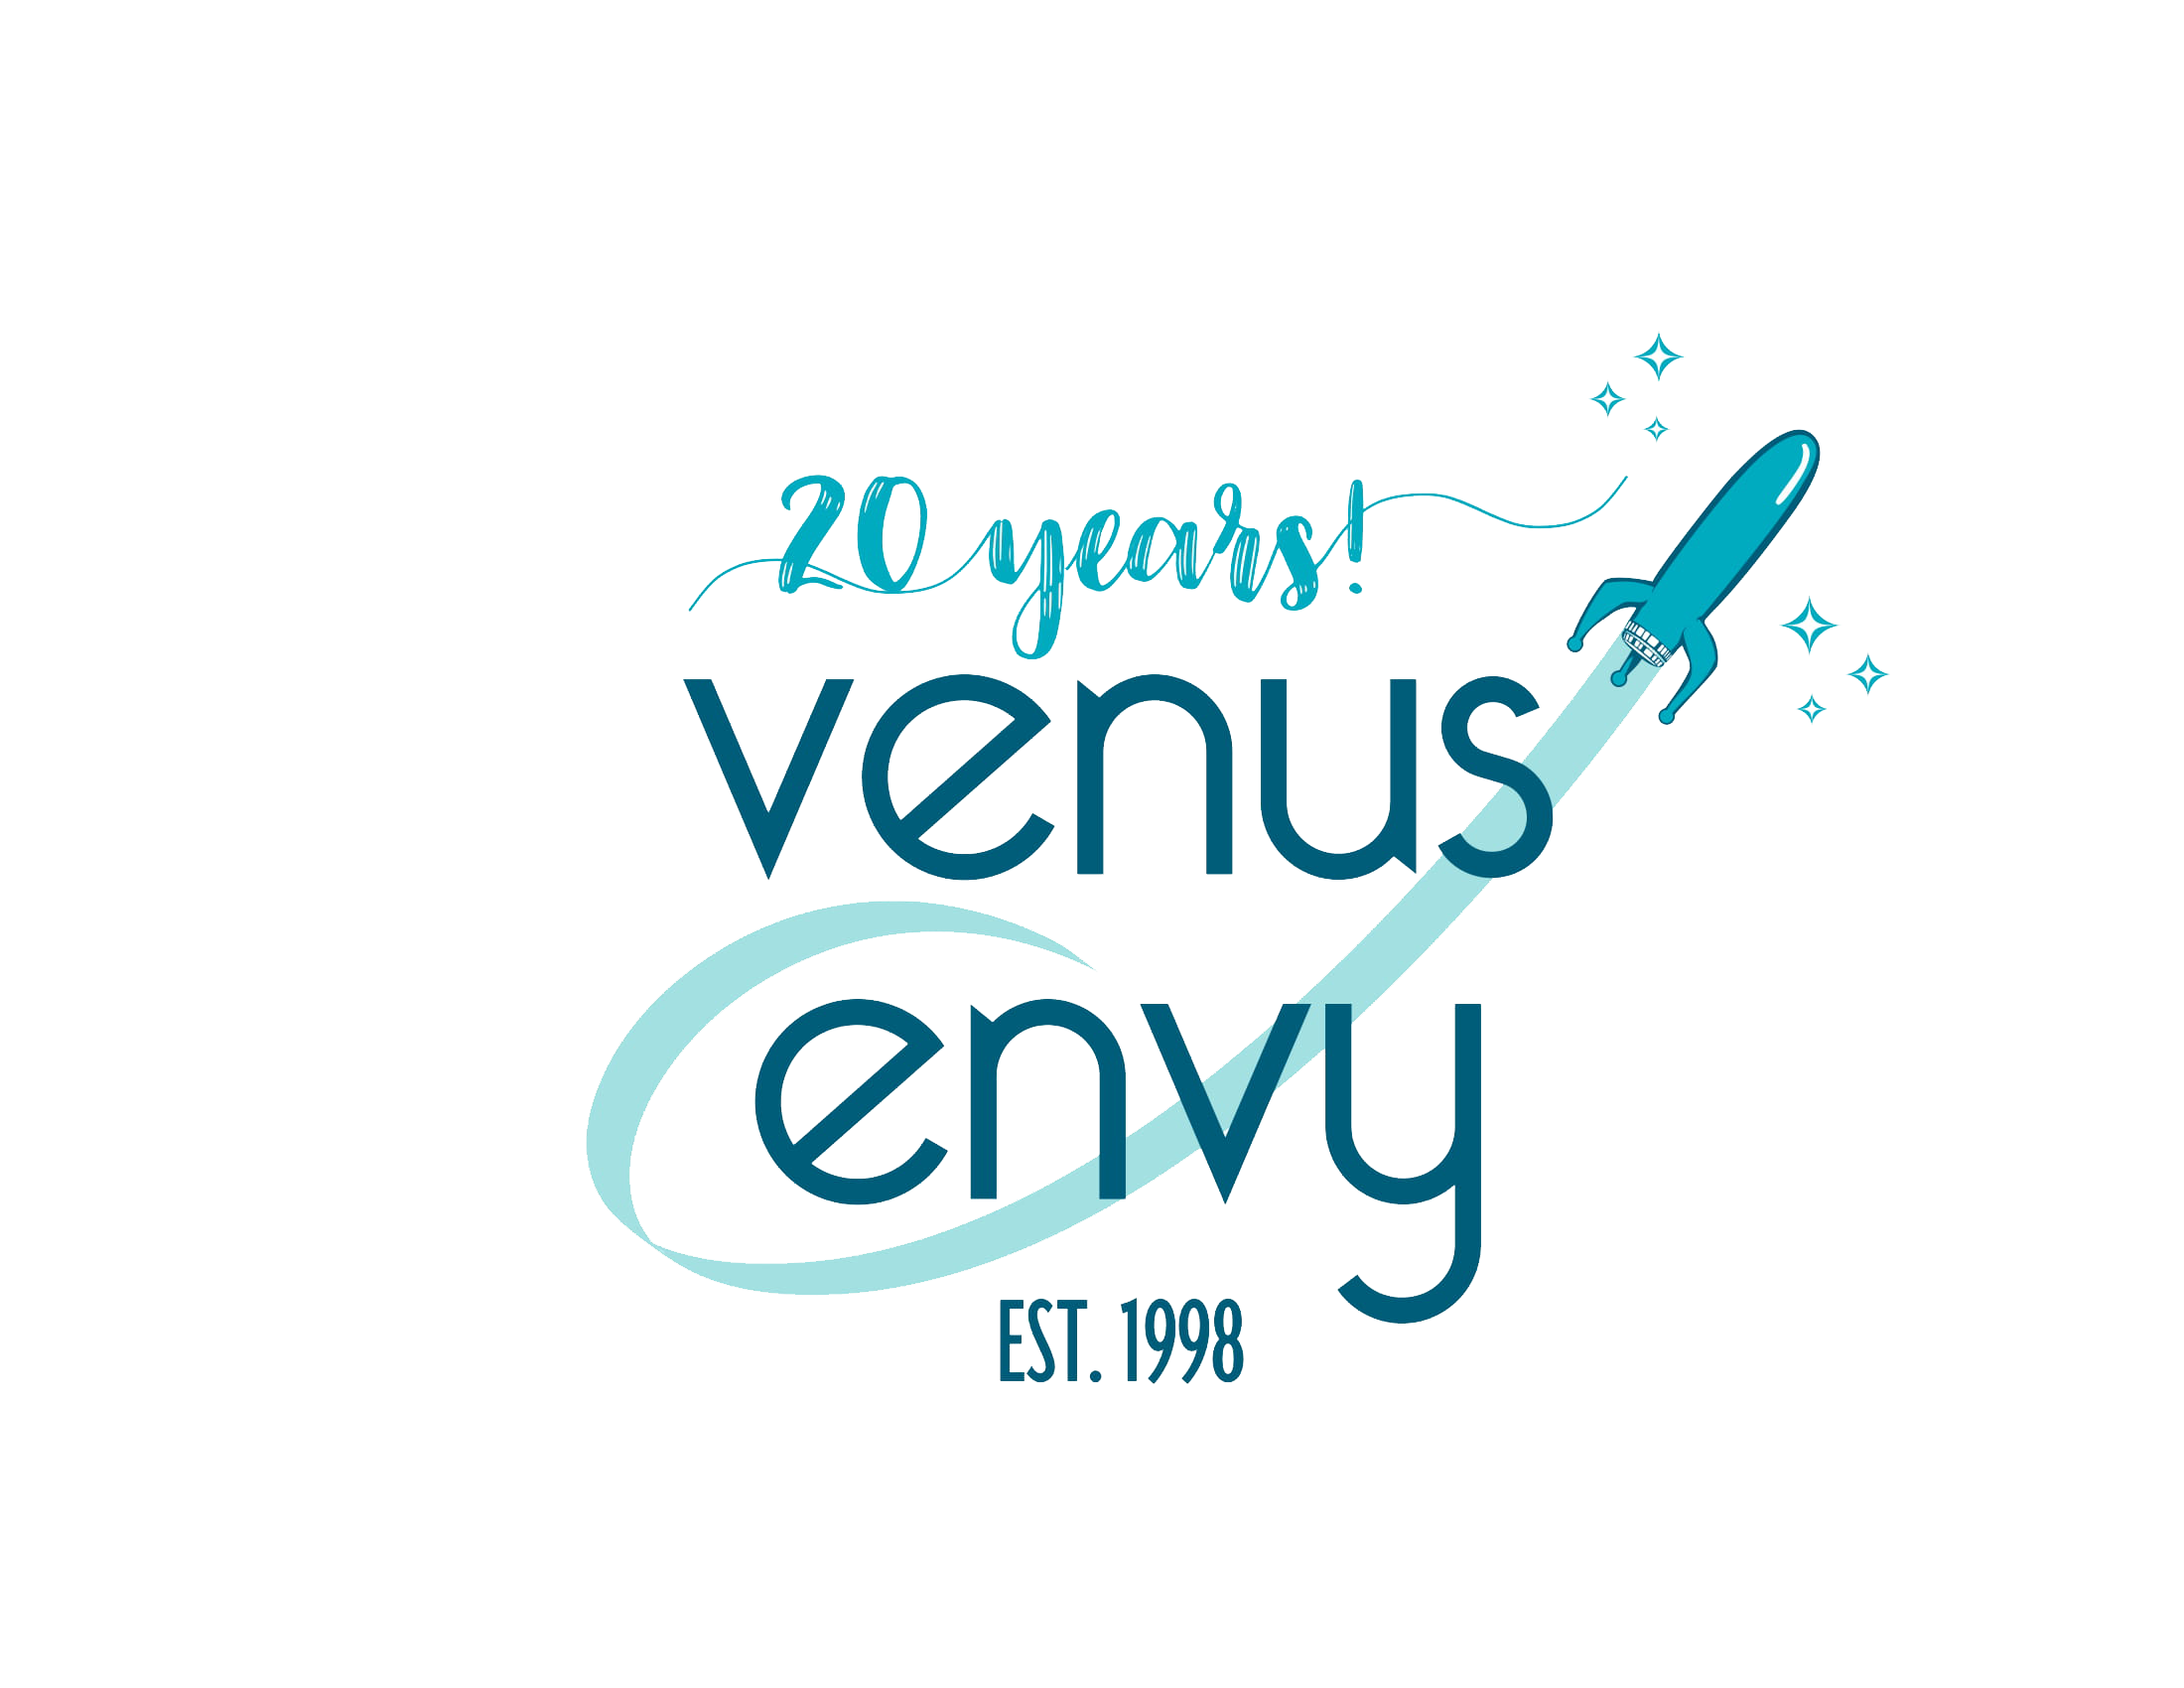 20th Anniversary Venus Envy logo